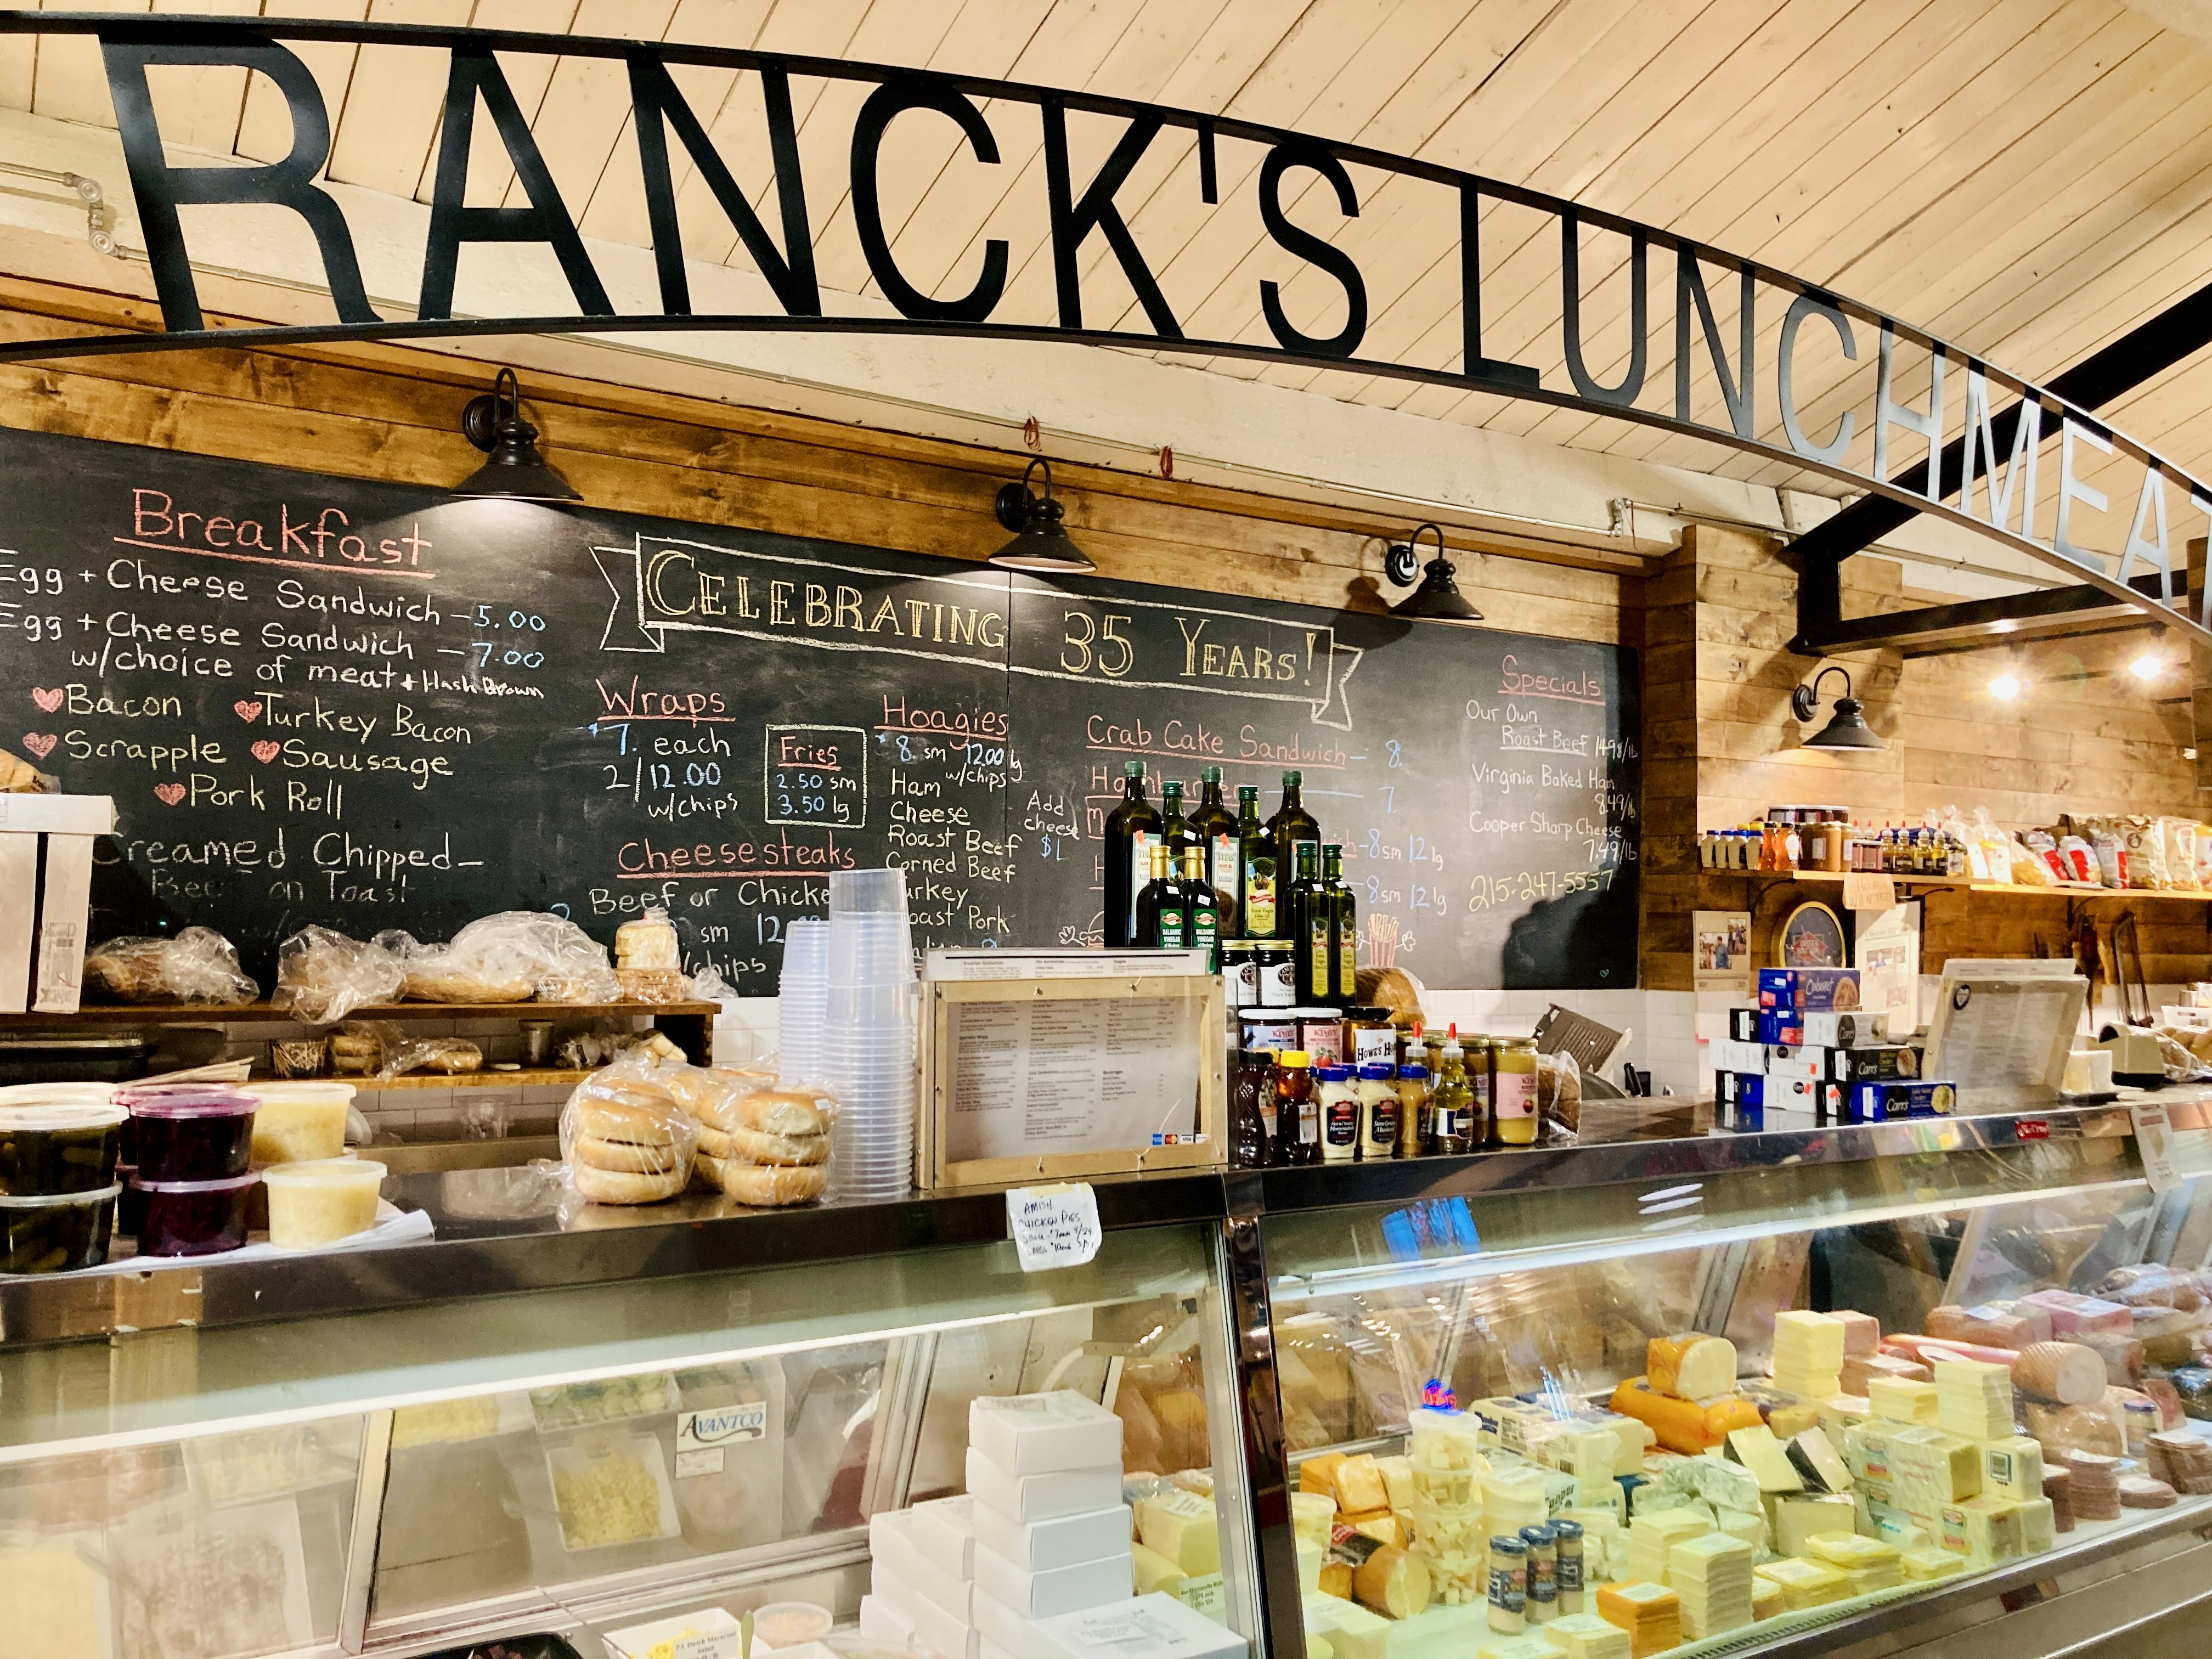 Ranck's Lunchmeats on Germantown Ave